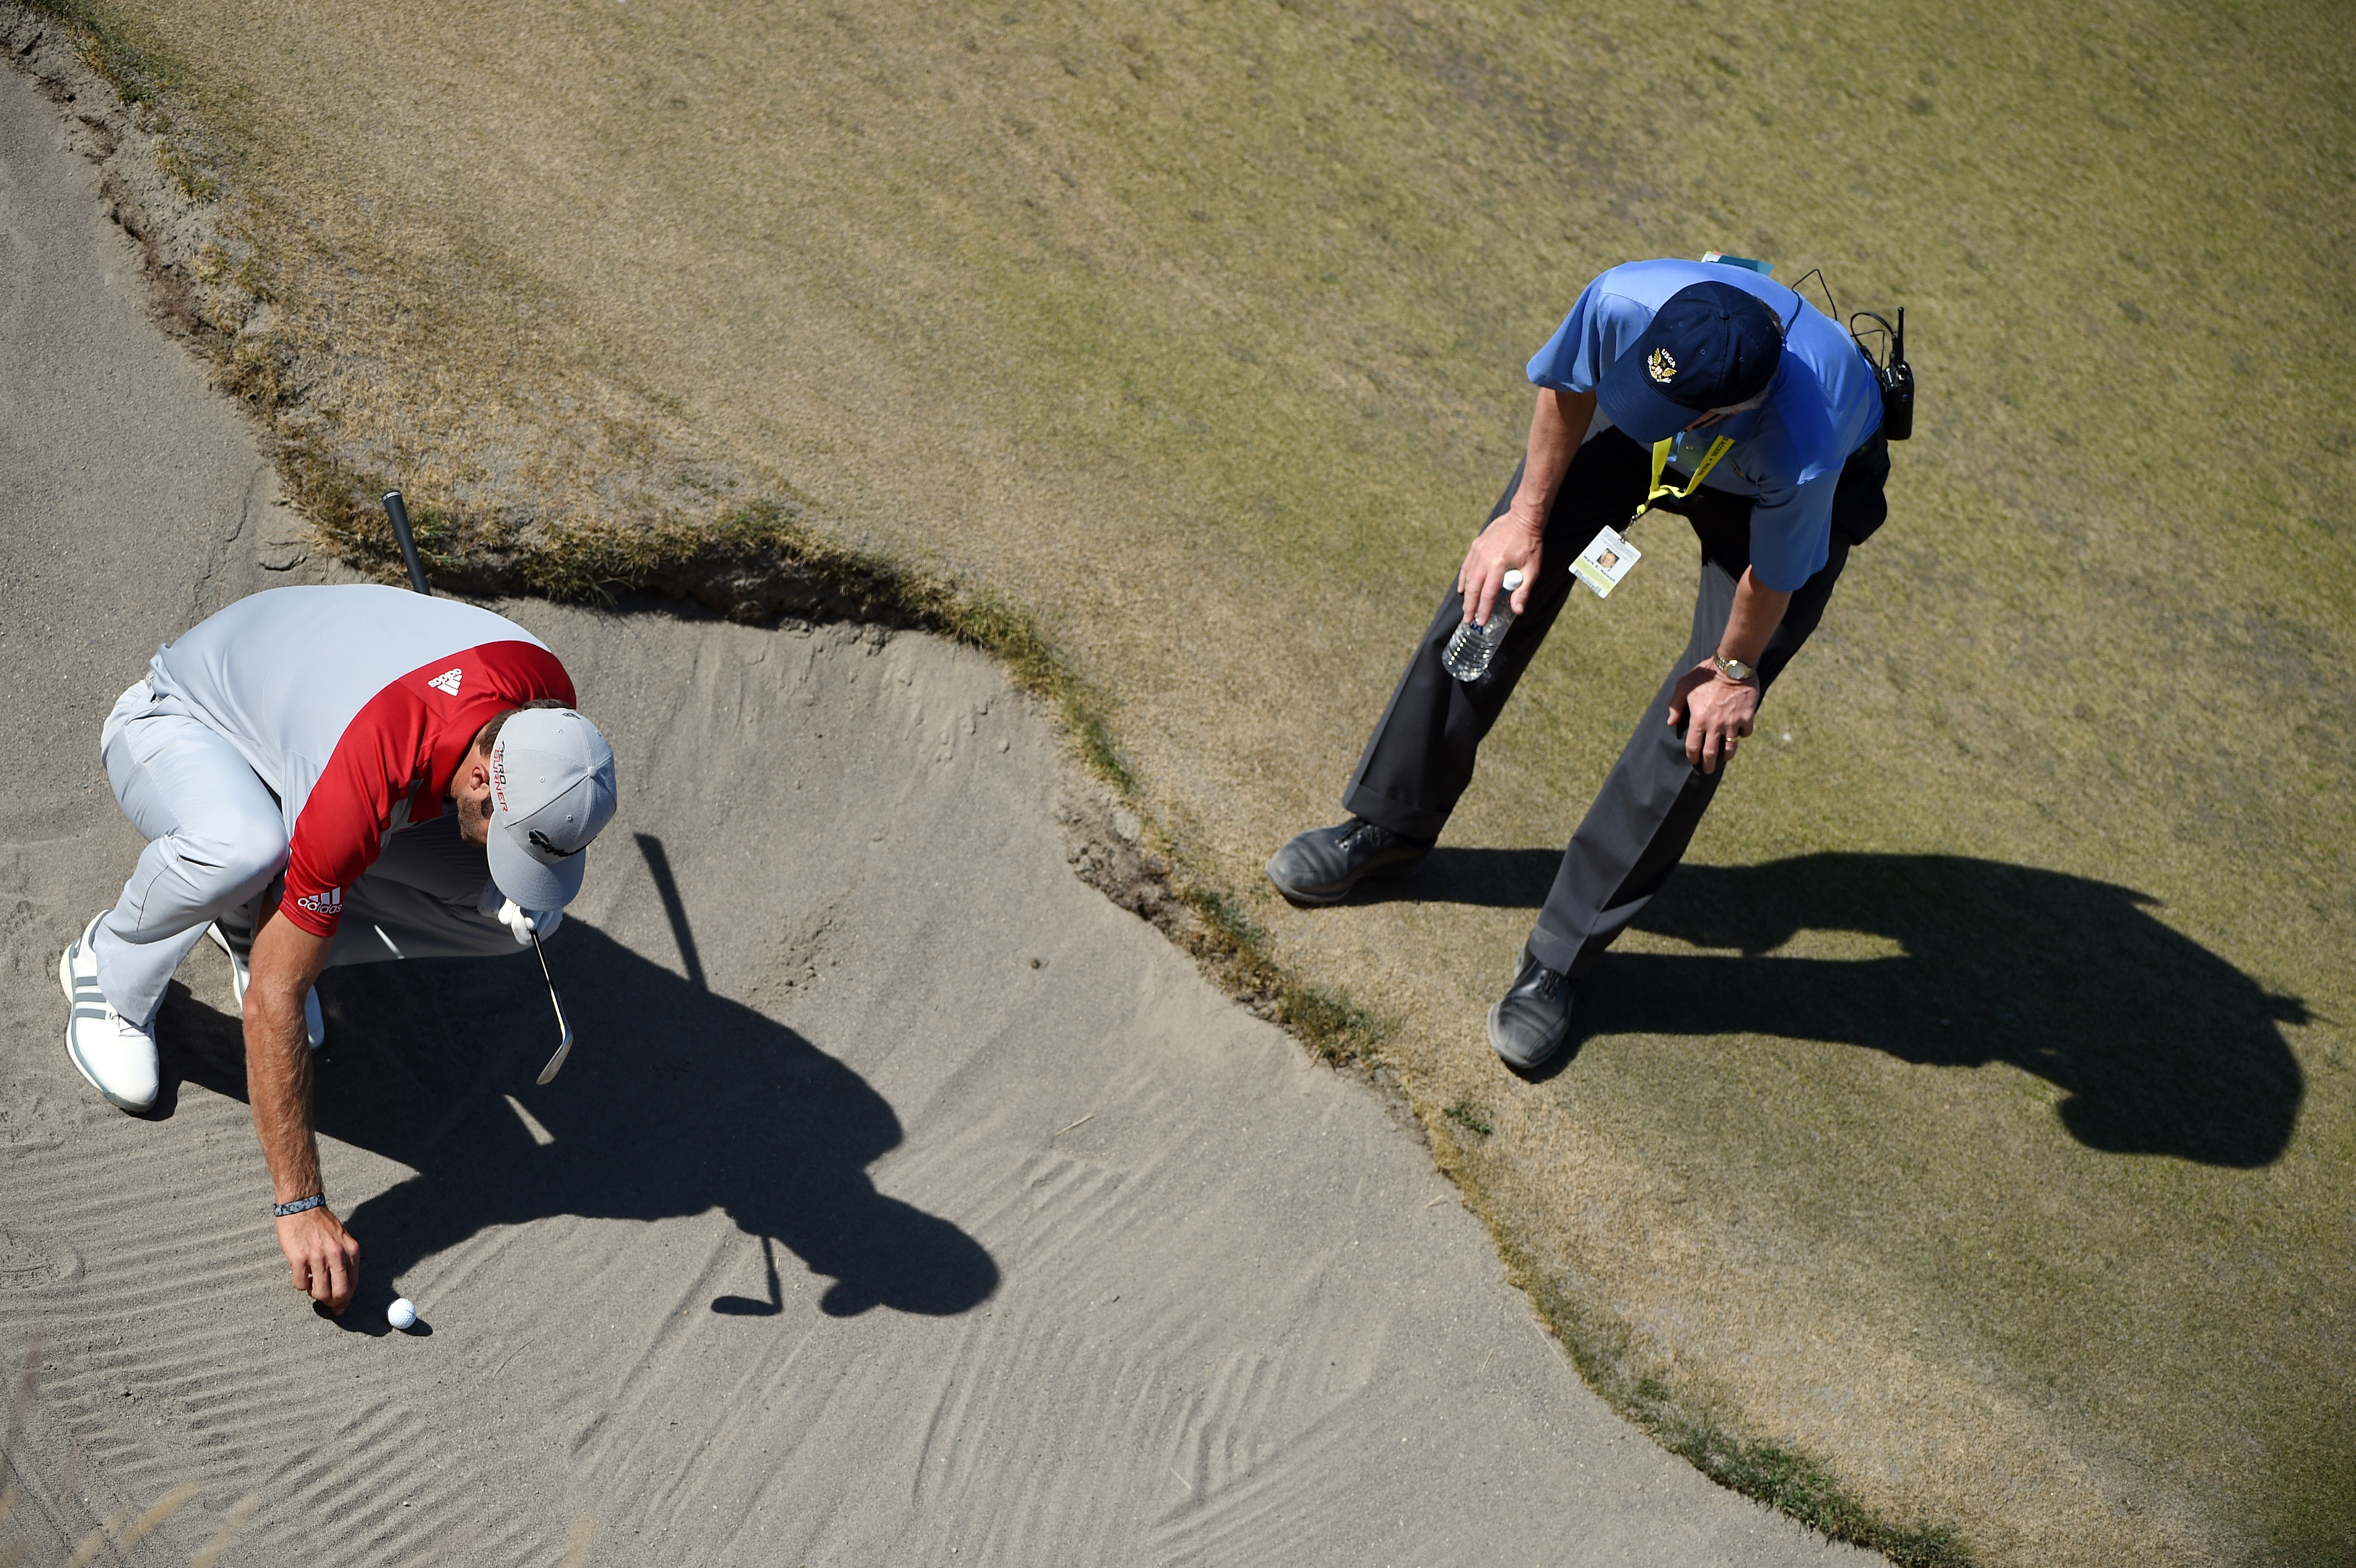 Players will be able to remove loose impediments from a bunker.